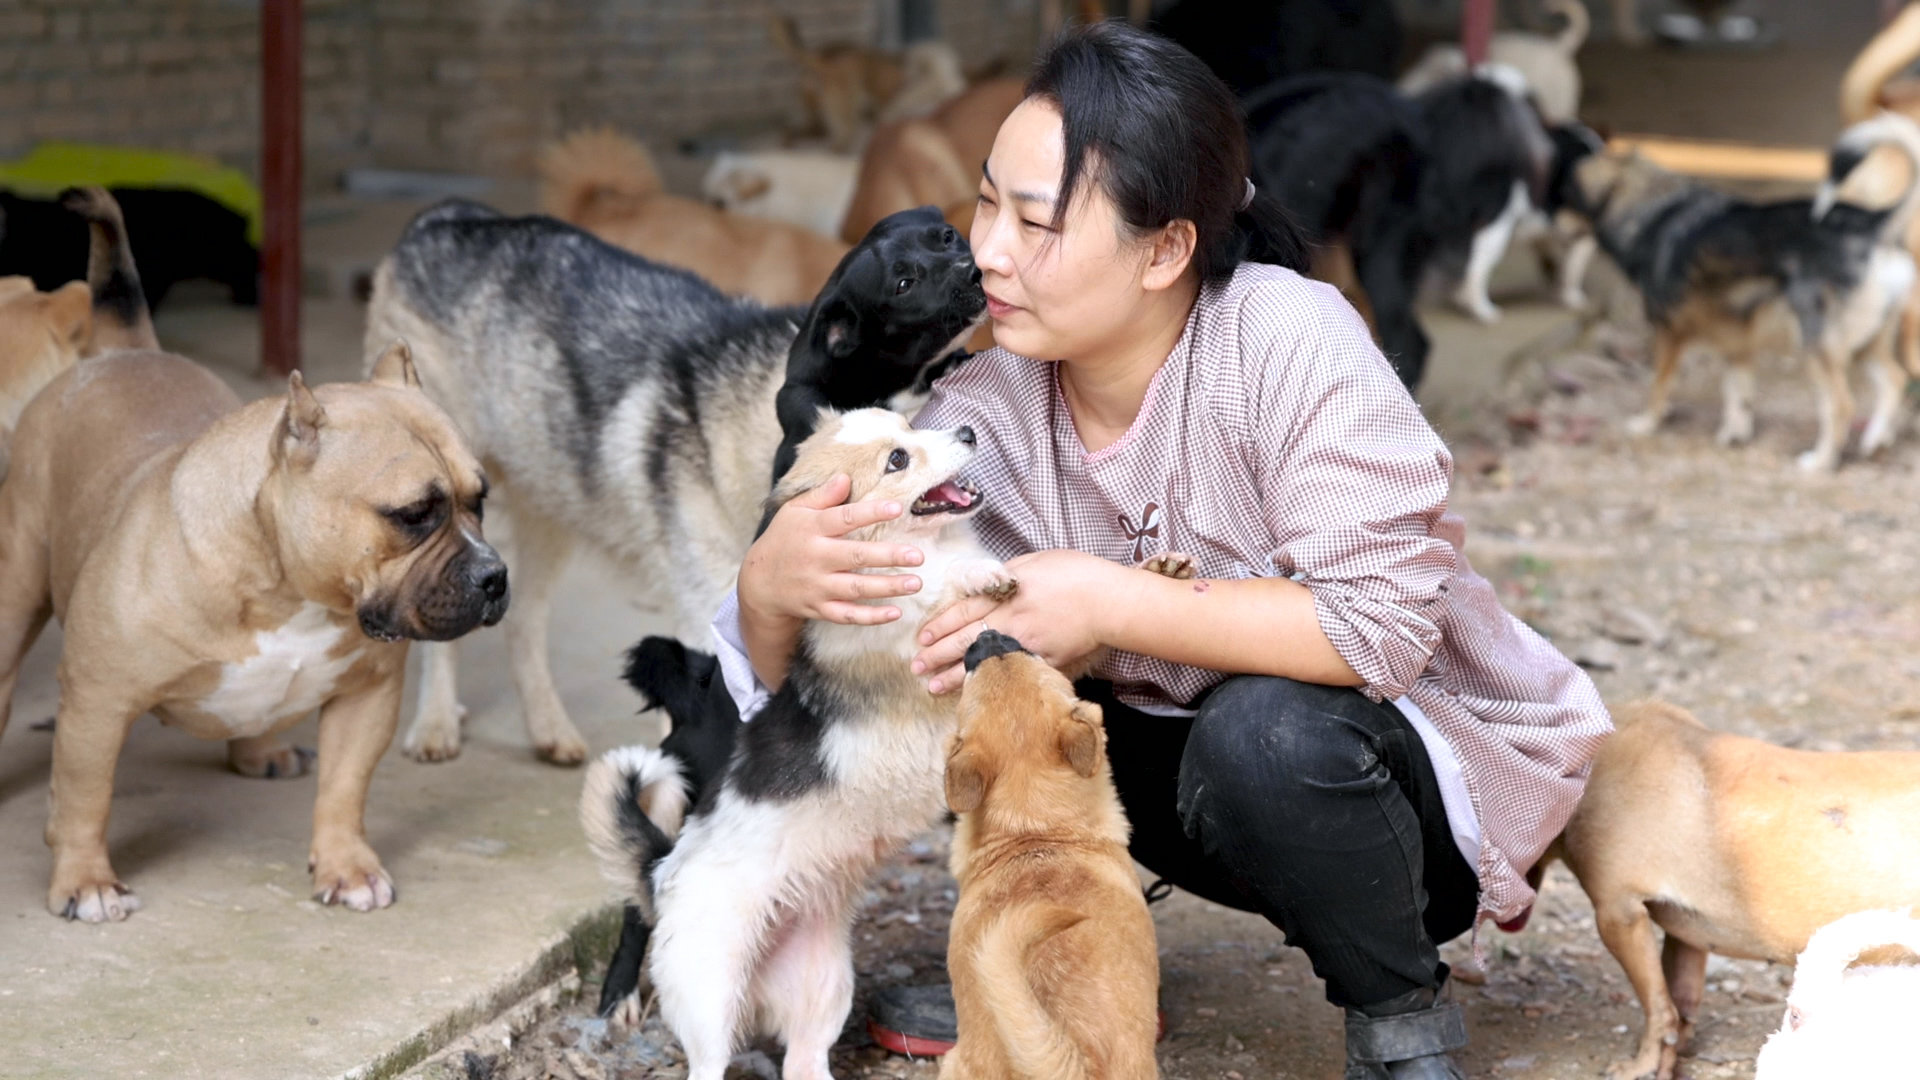 Li Heng, a volunteer for the Furry Angels Haven animal shelter in Wuhan, China is shown surrounded by rescue dogs at the organization's new premises in this still taken from a video shot by TIME's Zhang Chi on Oct. 13, 2020.